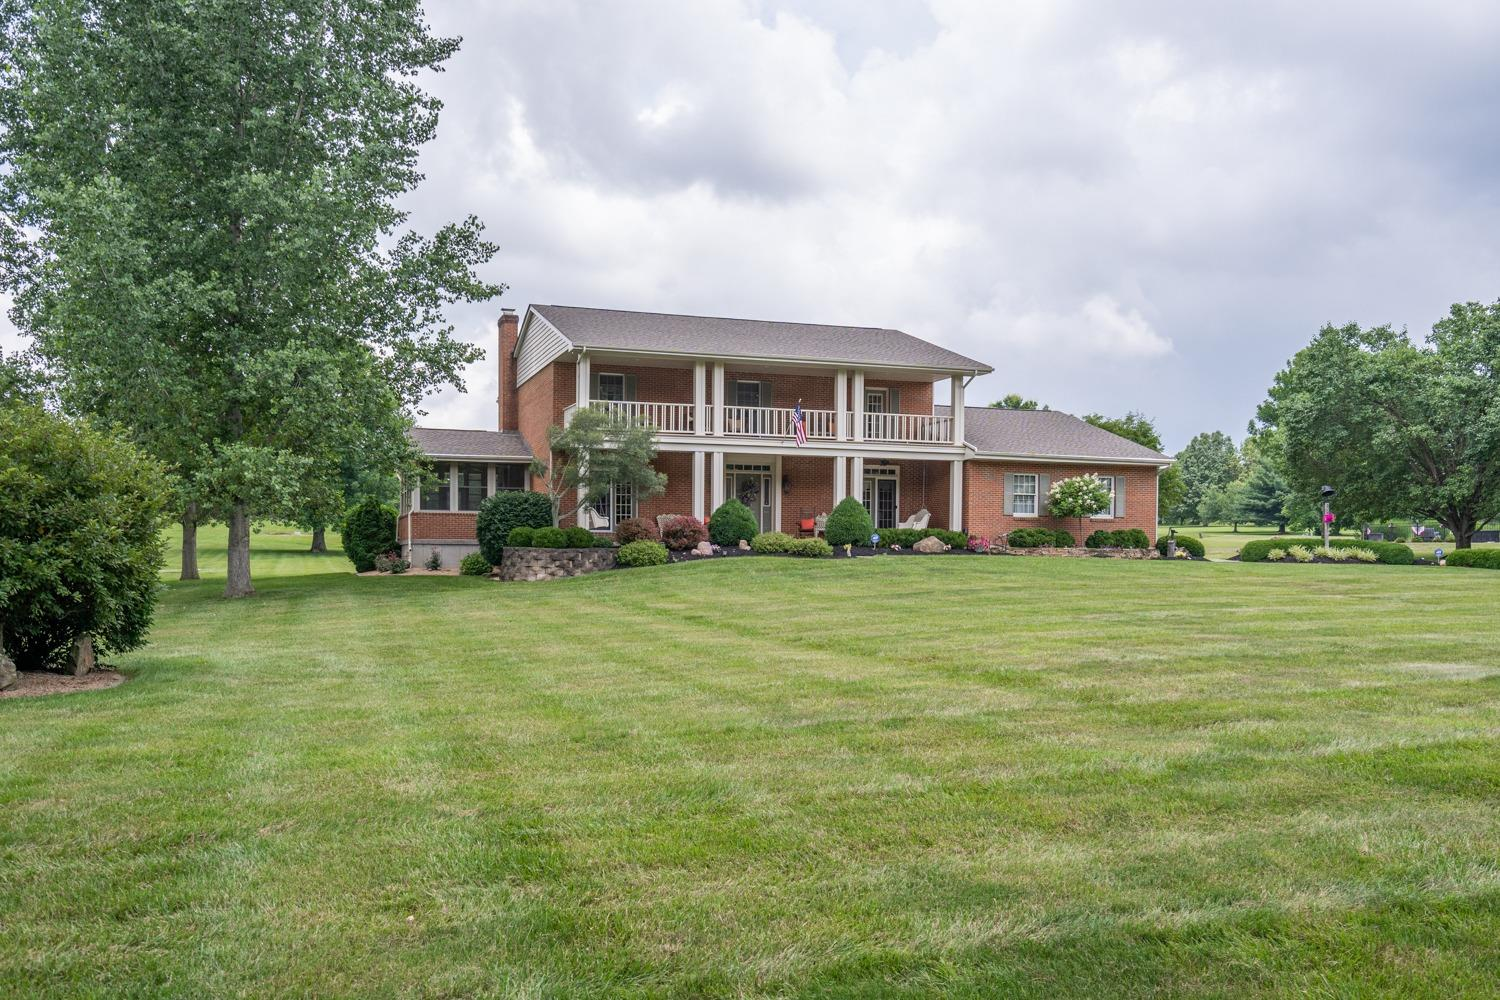 Photo 1 for 11747 Edgewood Rd Harrison Twp, OH 45030